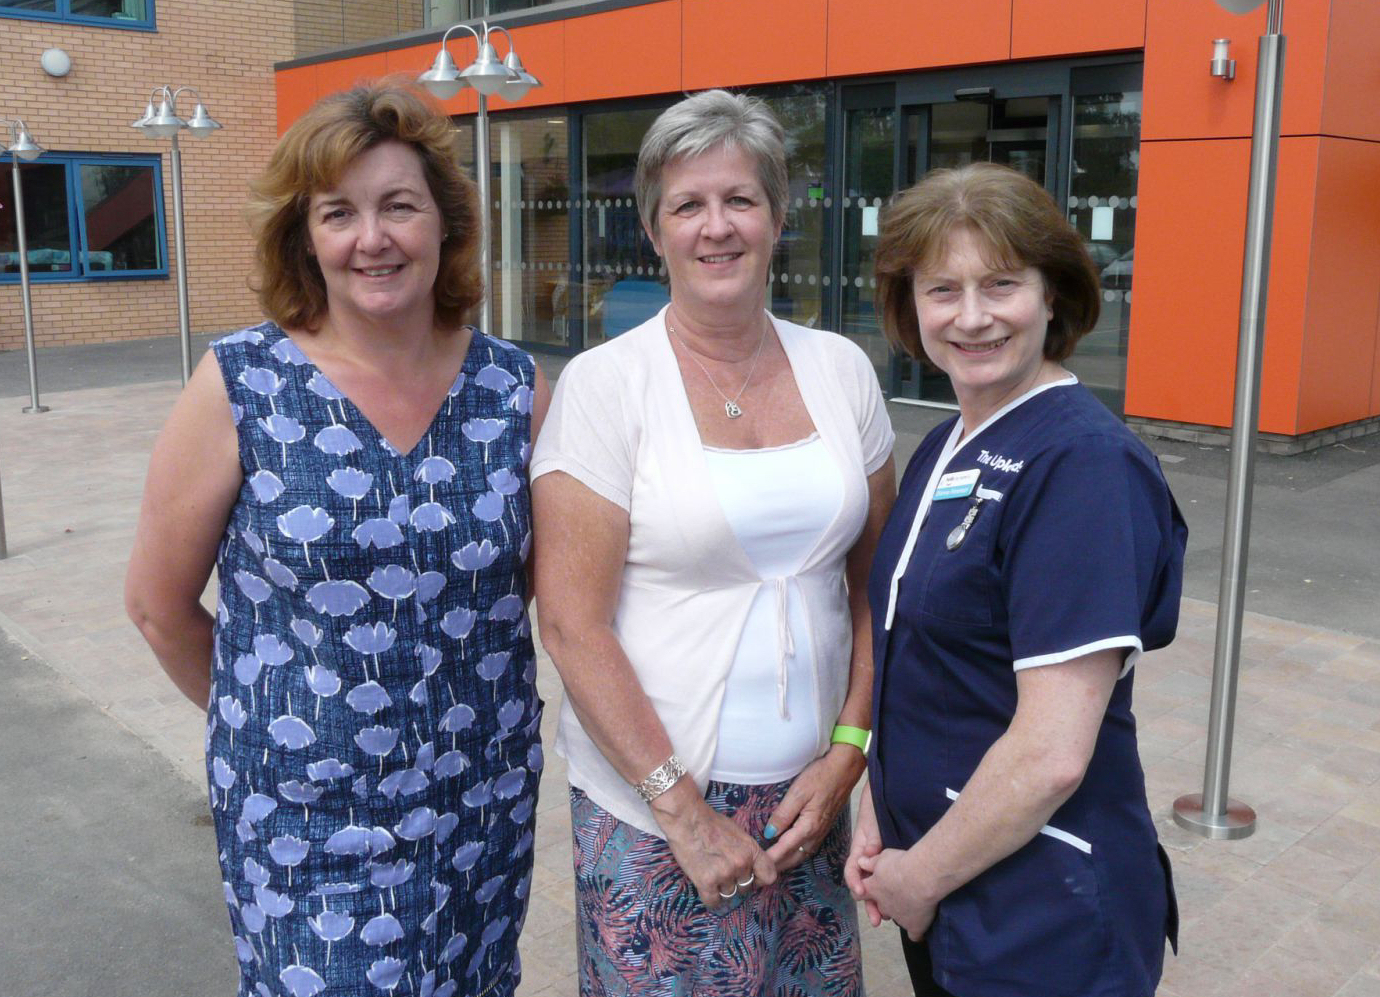 Jan Downes, Carey Bloomer and Dianne Foreman at The Uplands